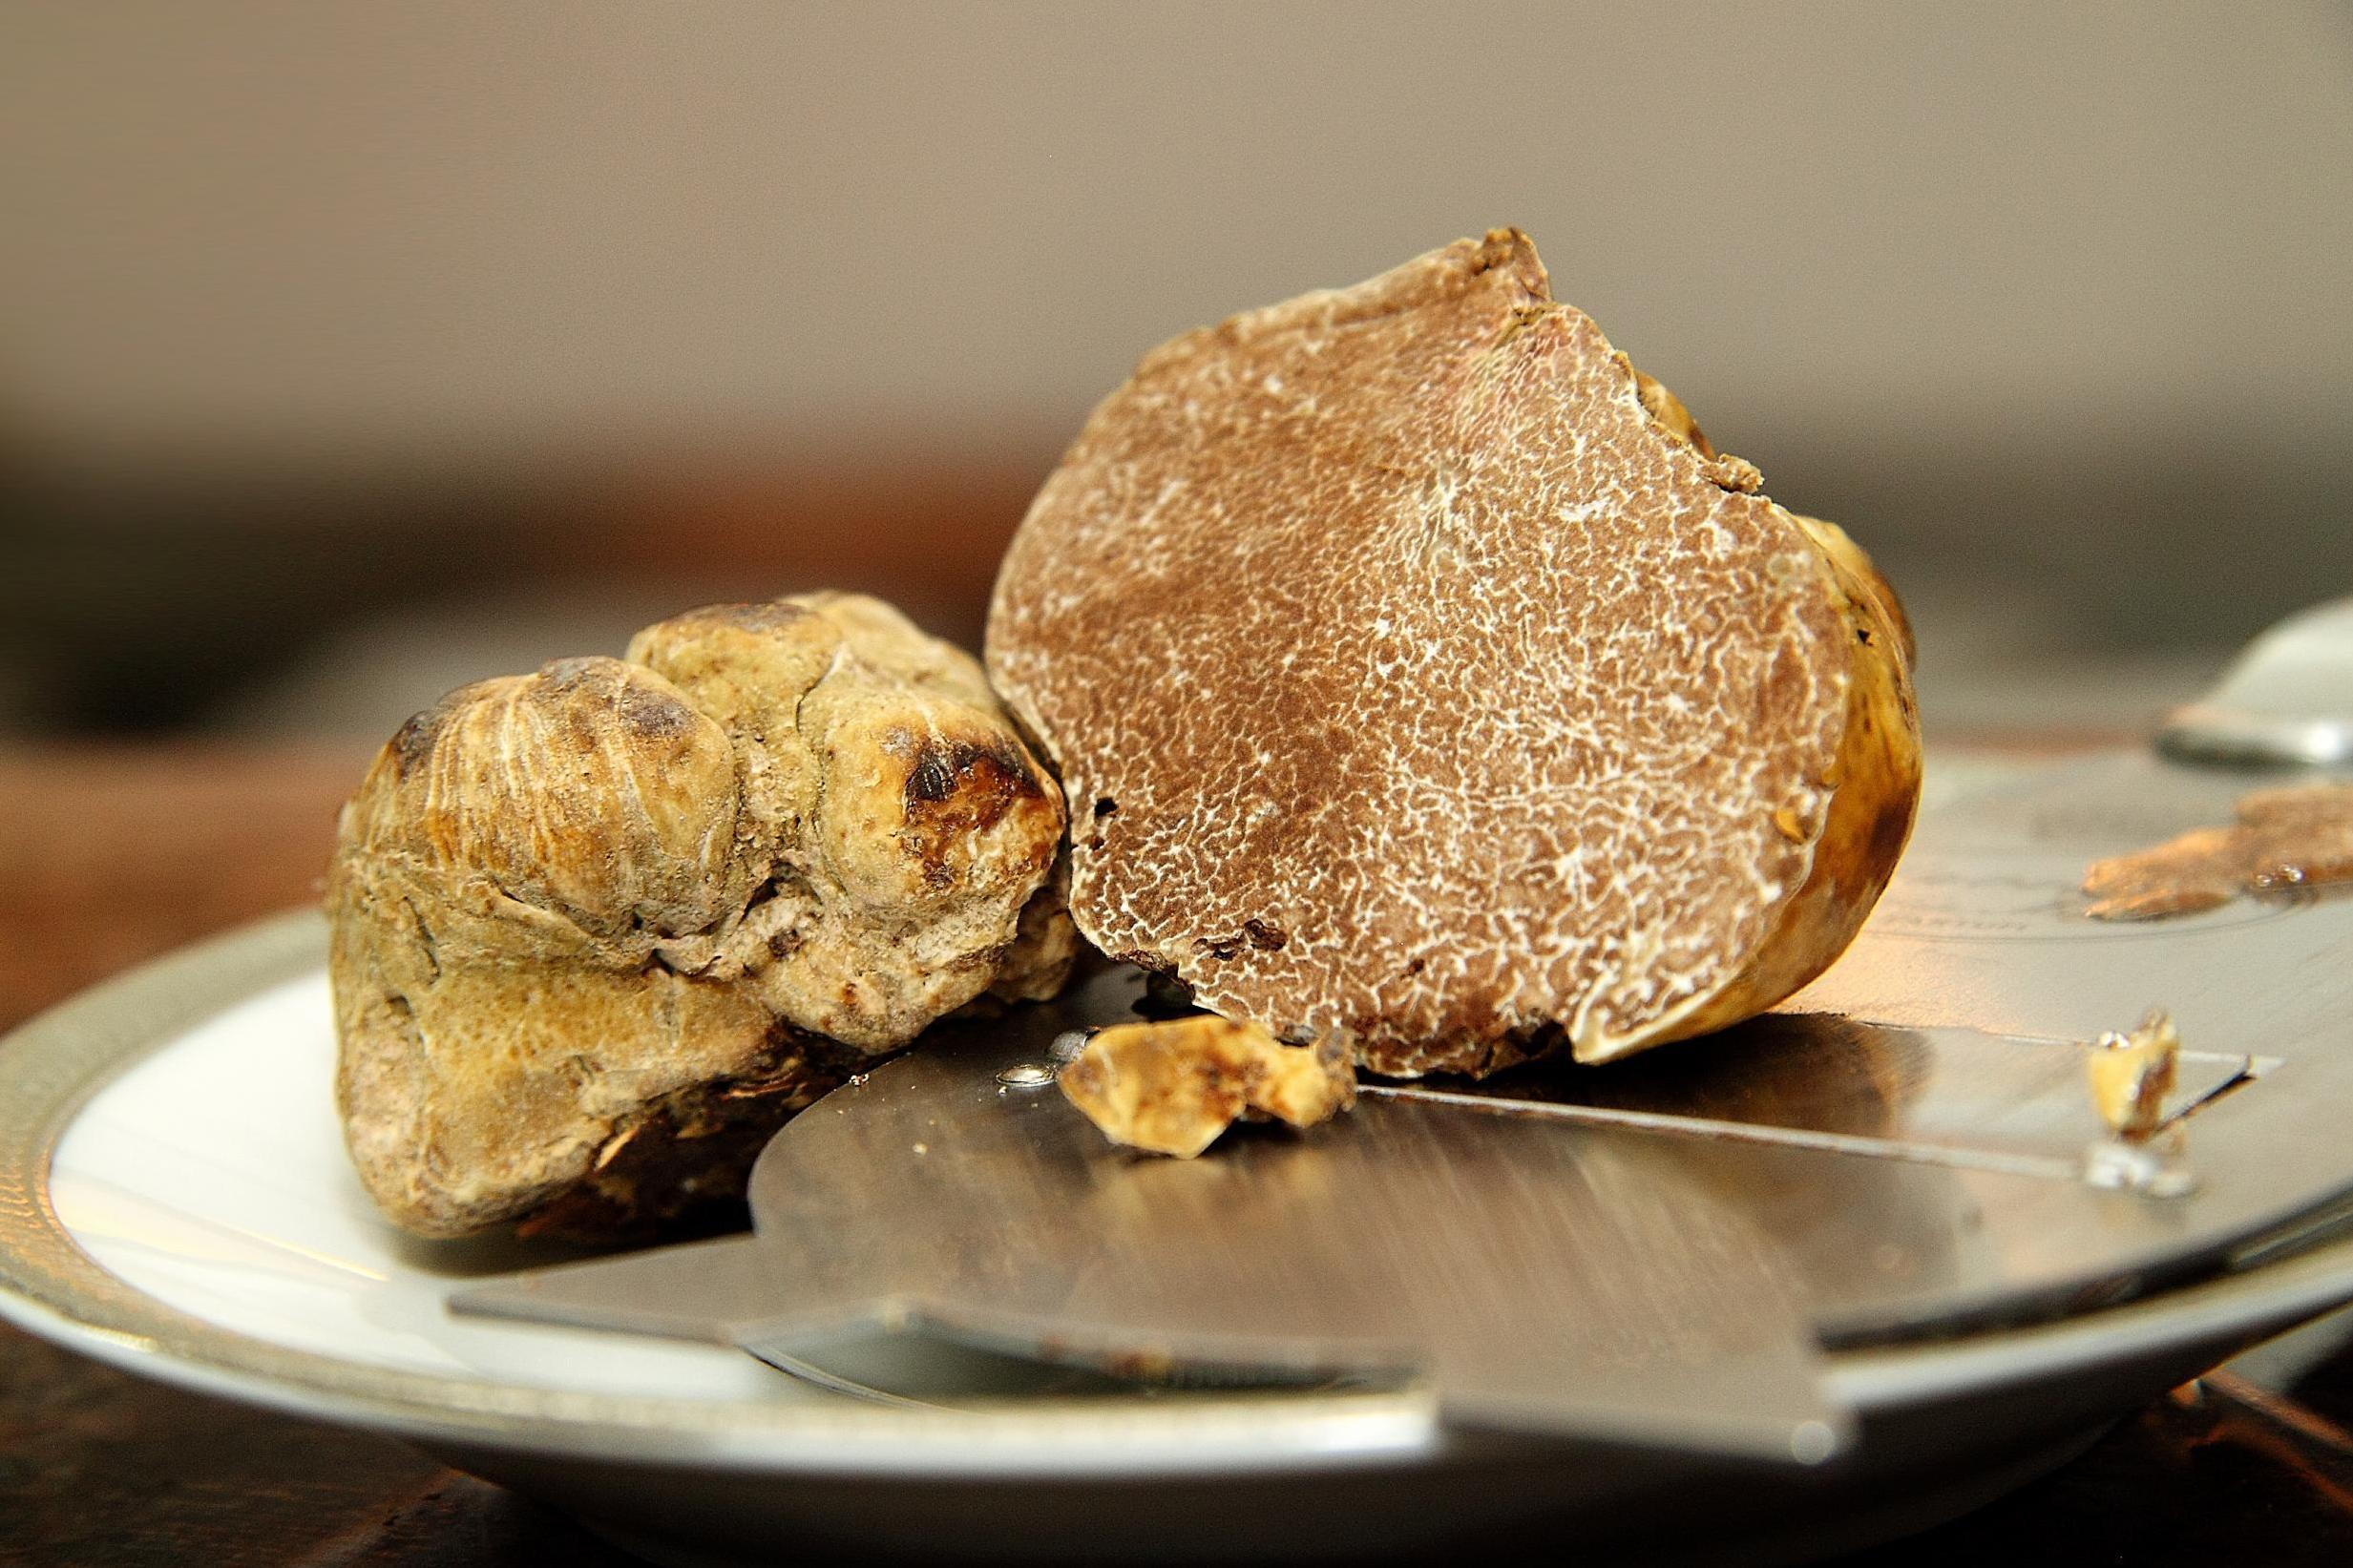 White truffle prices are half the cost of last year's 1